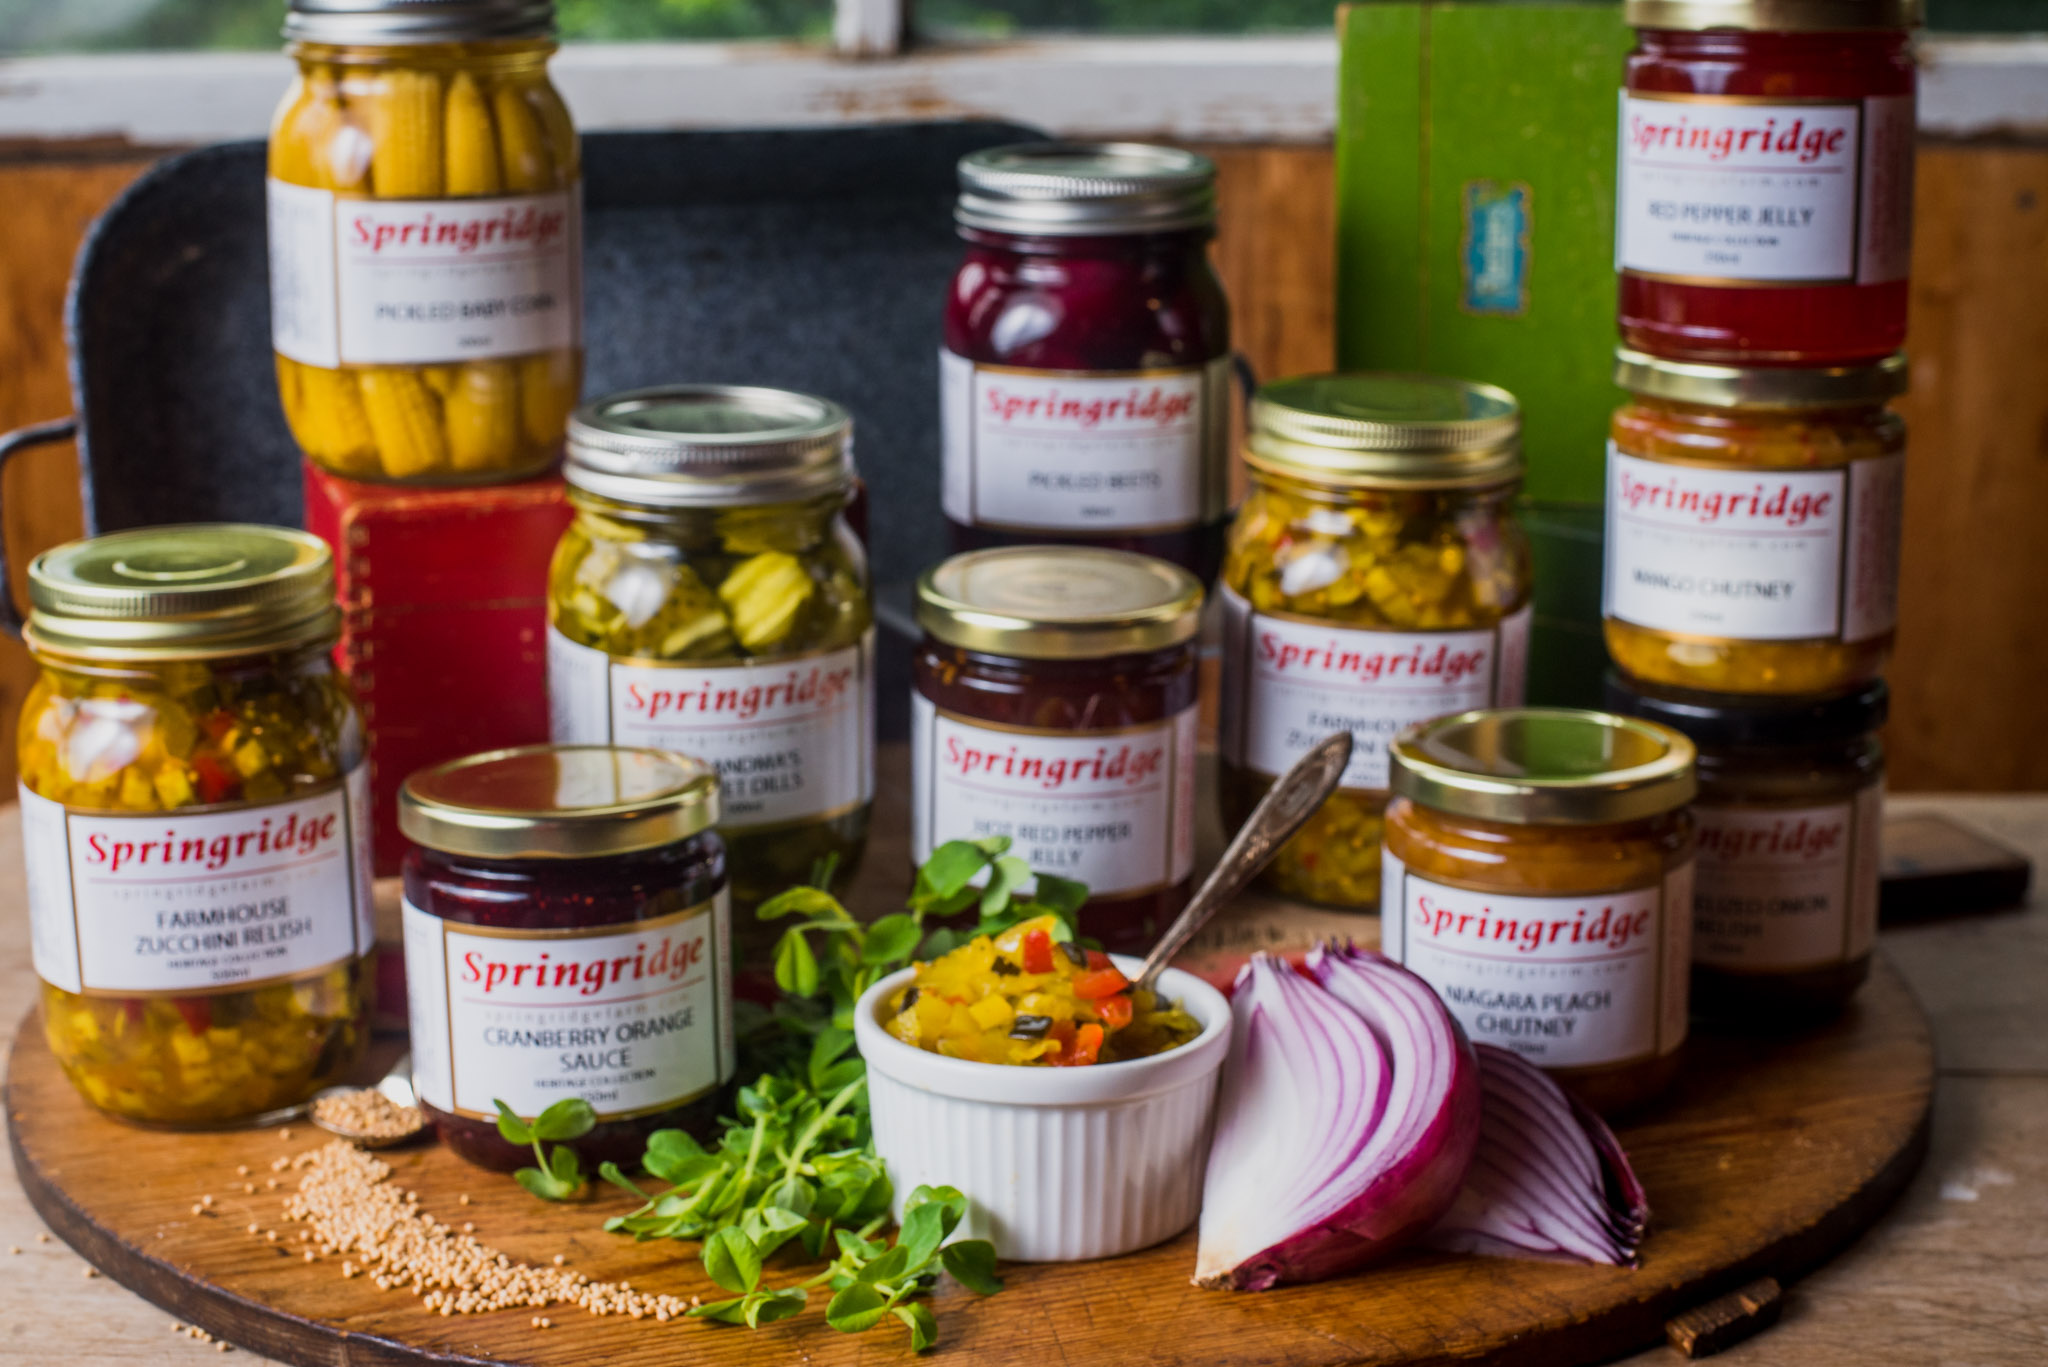 Food Styling for Springridge Farms